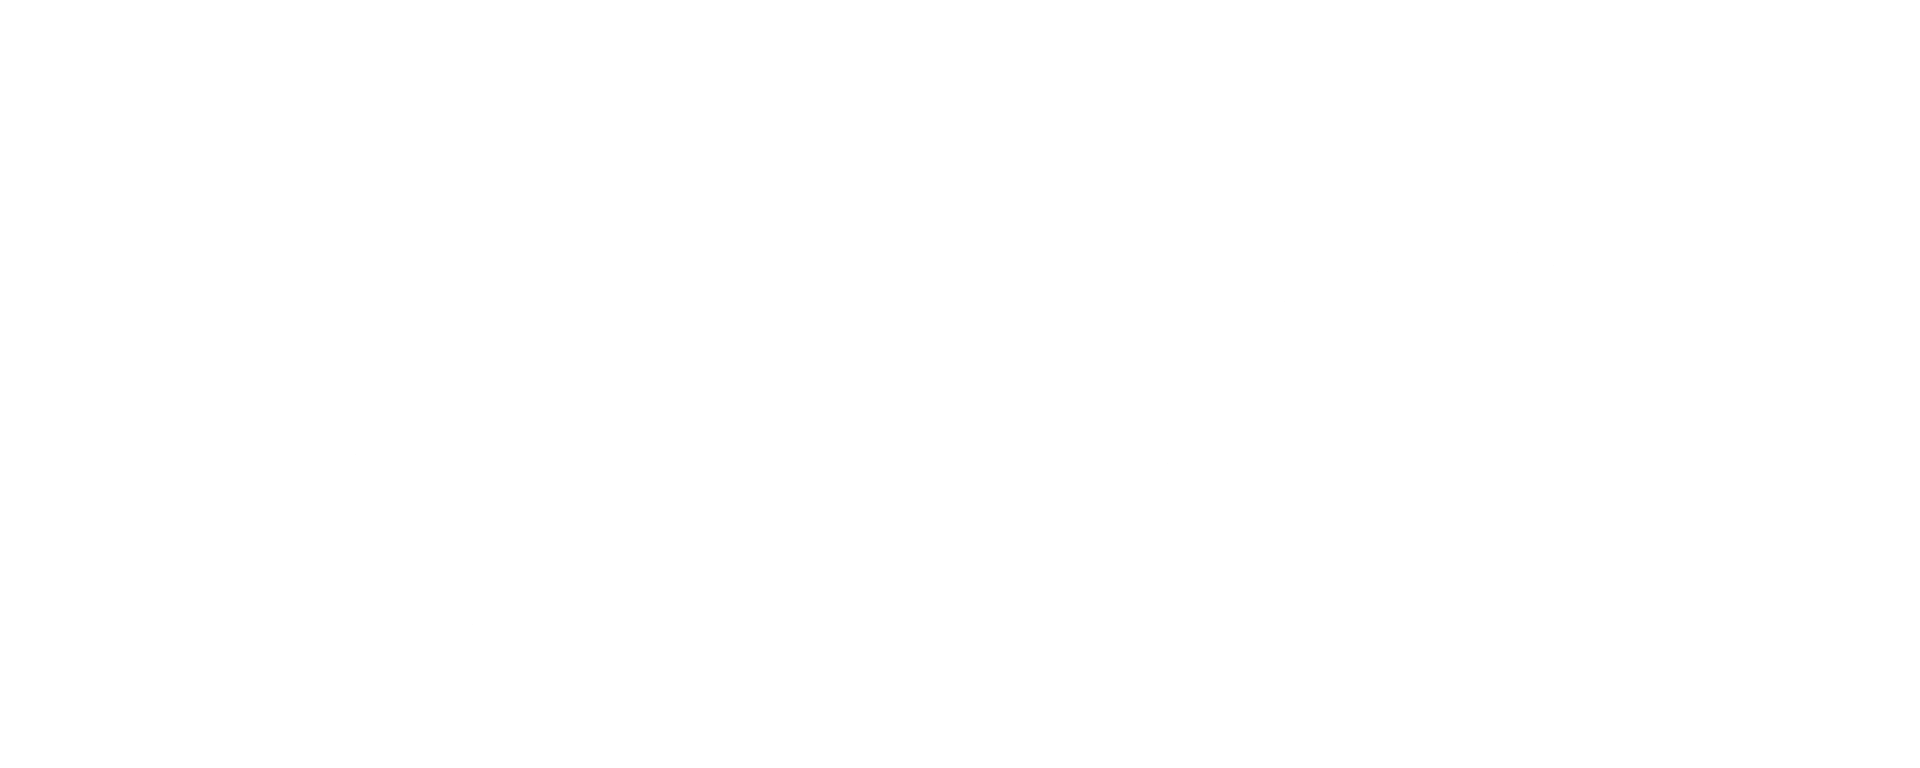 FairwaySports